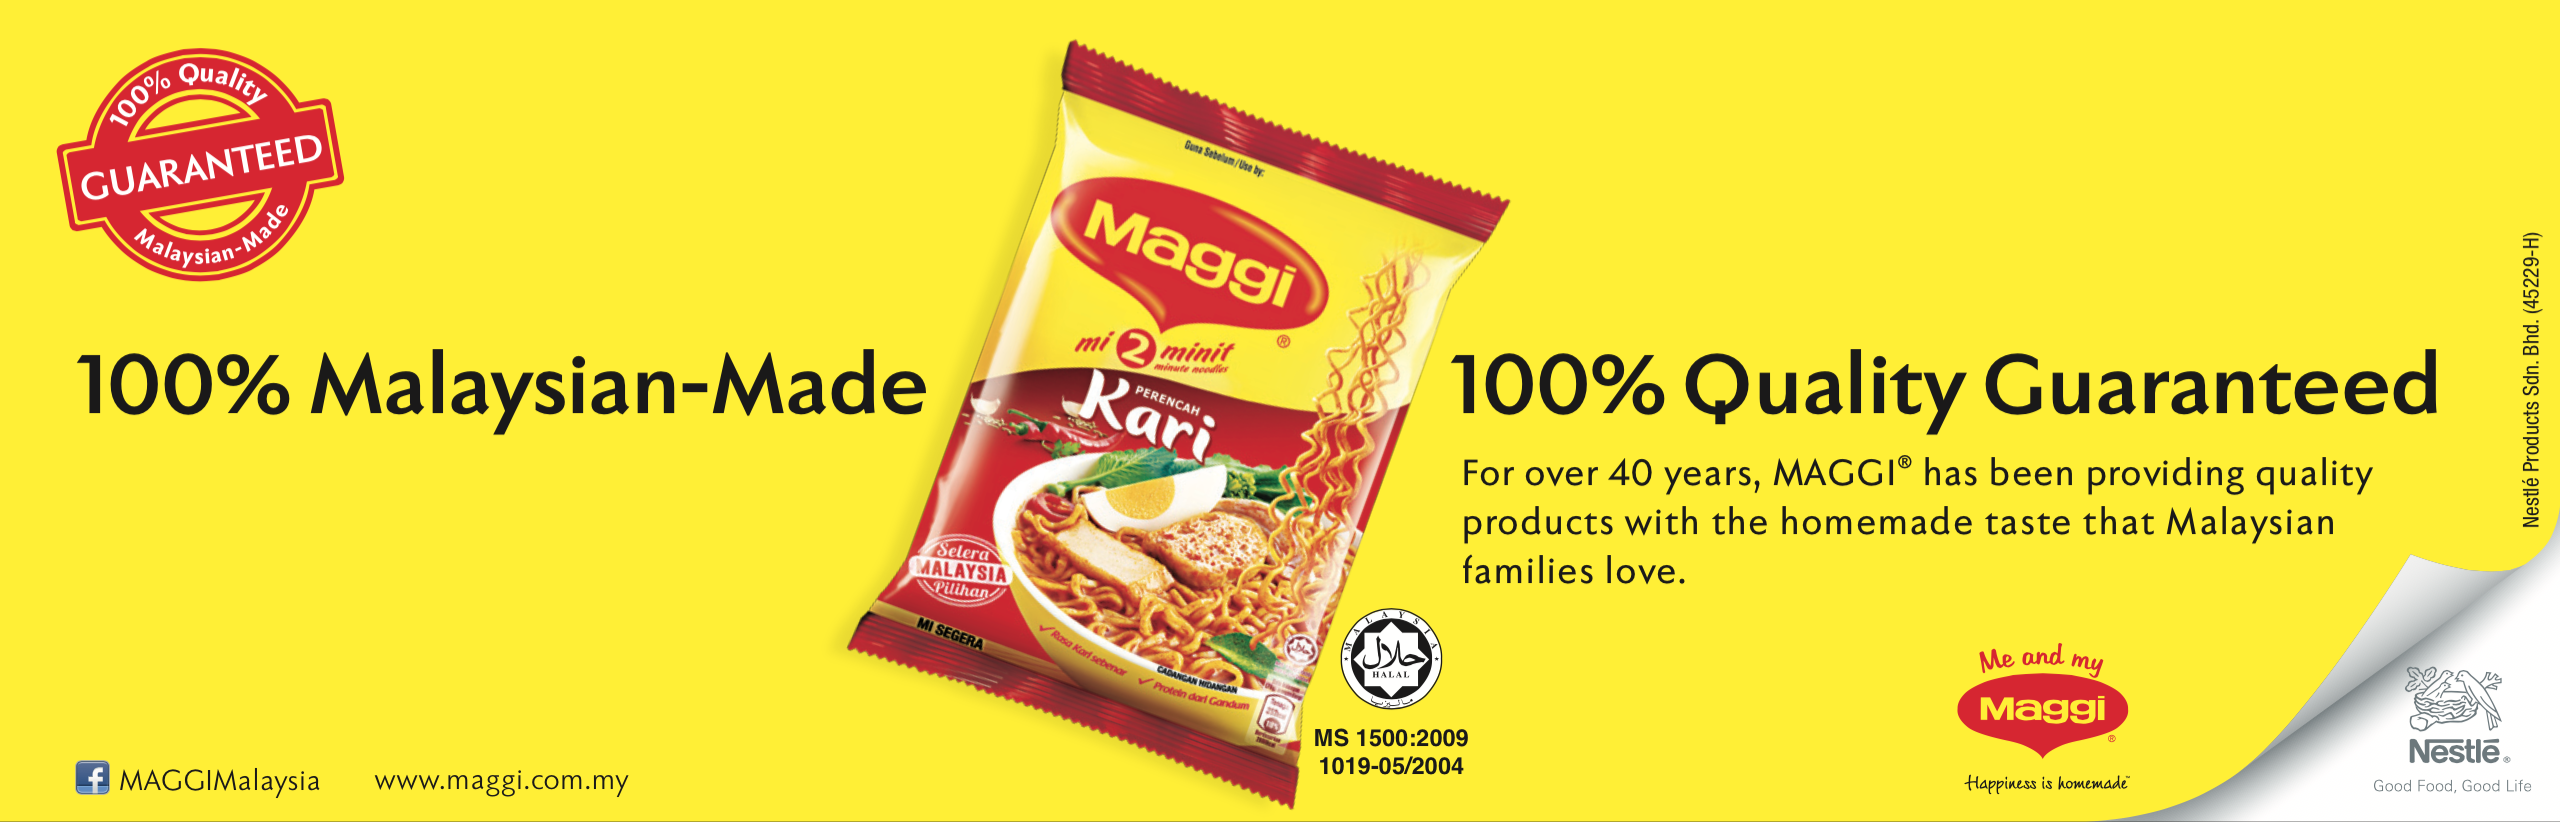 /asset-library/PublishingImages/Media/press_release/nestle-malaysia-assures-highest-safety-and-quality-standards-for-maggi-noodles.png